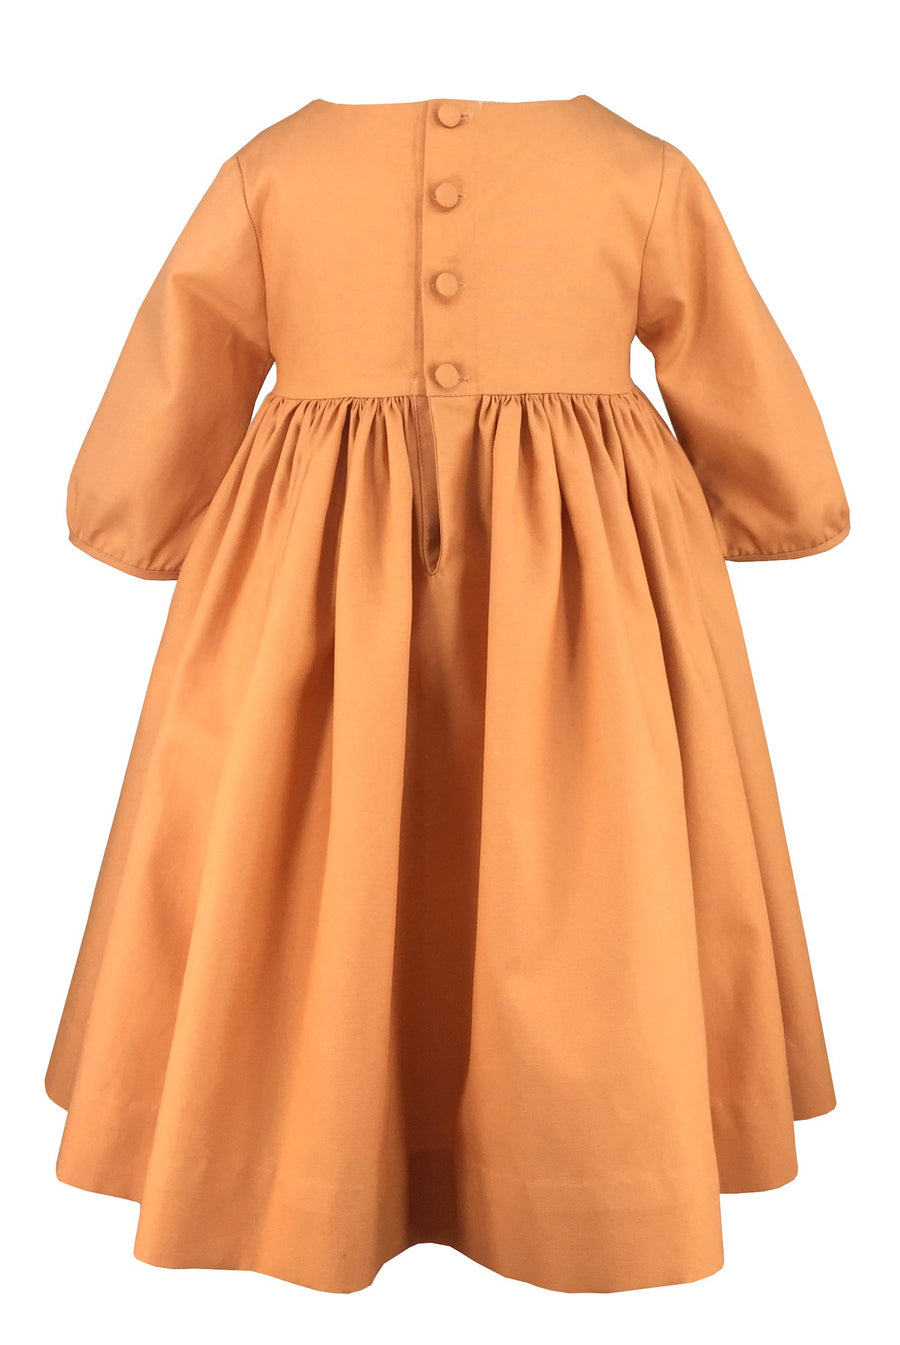 charlottesydimby-handmade-classic-chic-fall-winter-smocked-dress-domitille-orange-beaujour-girl-childwear